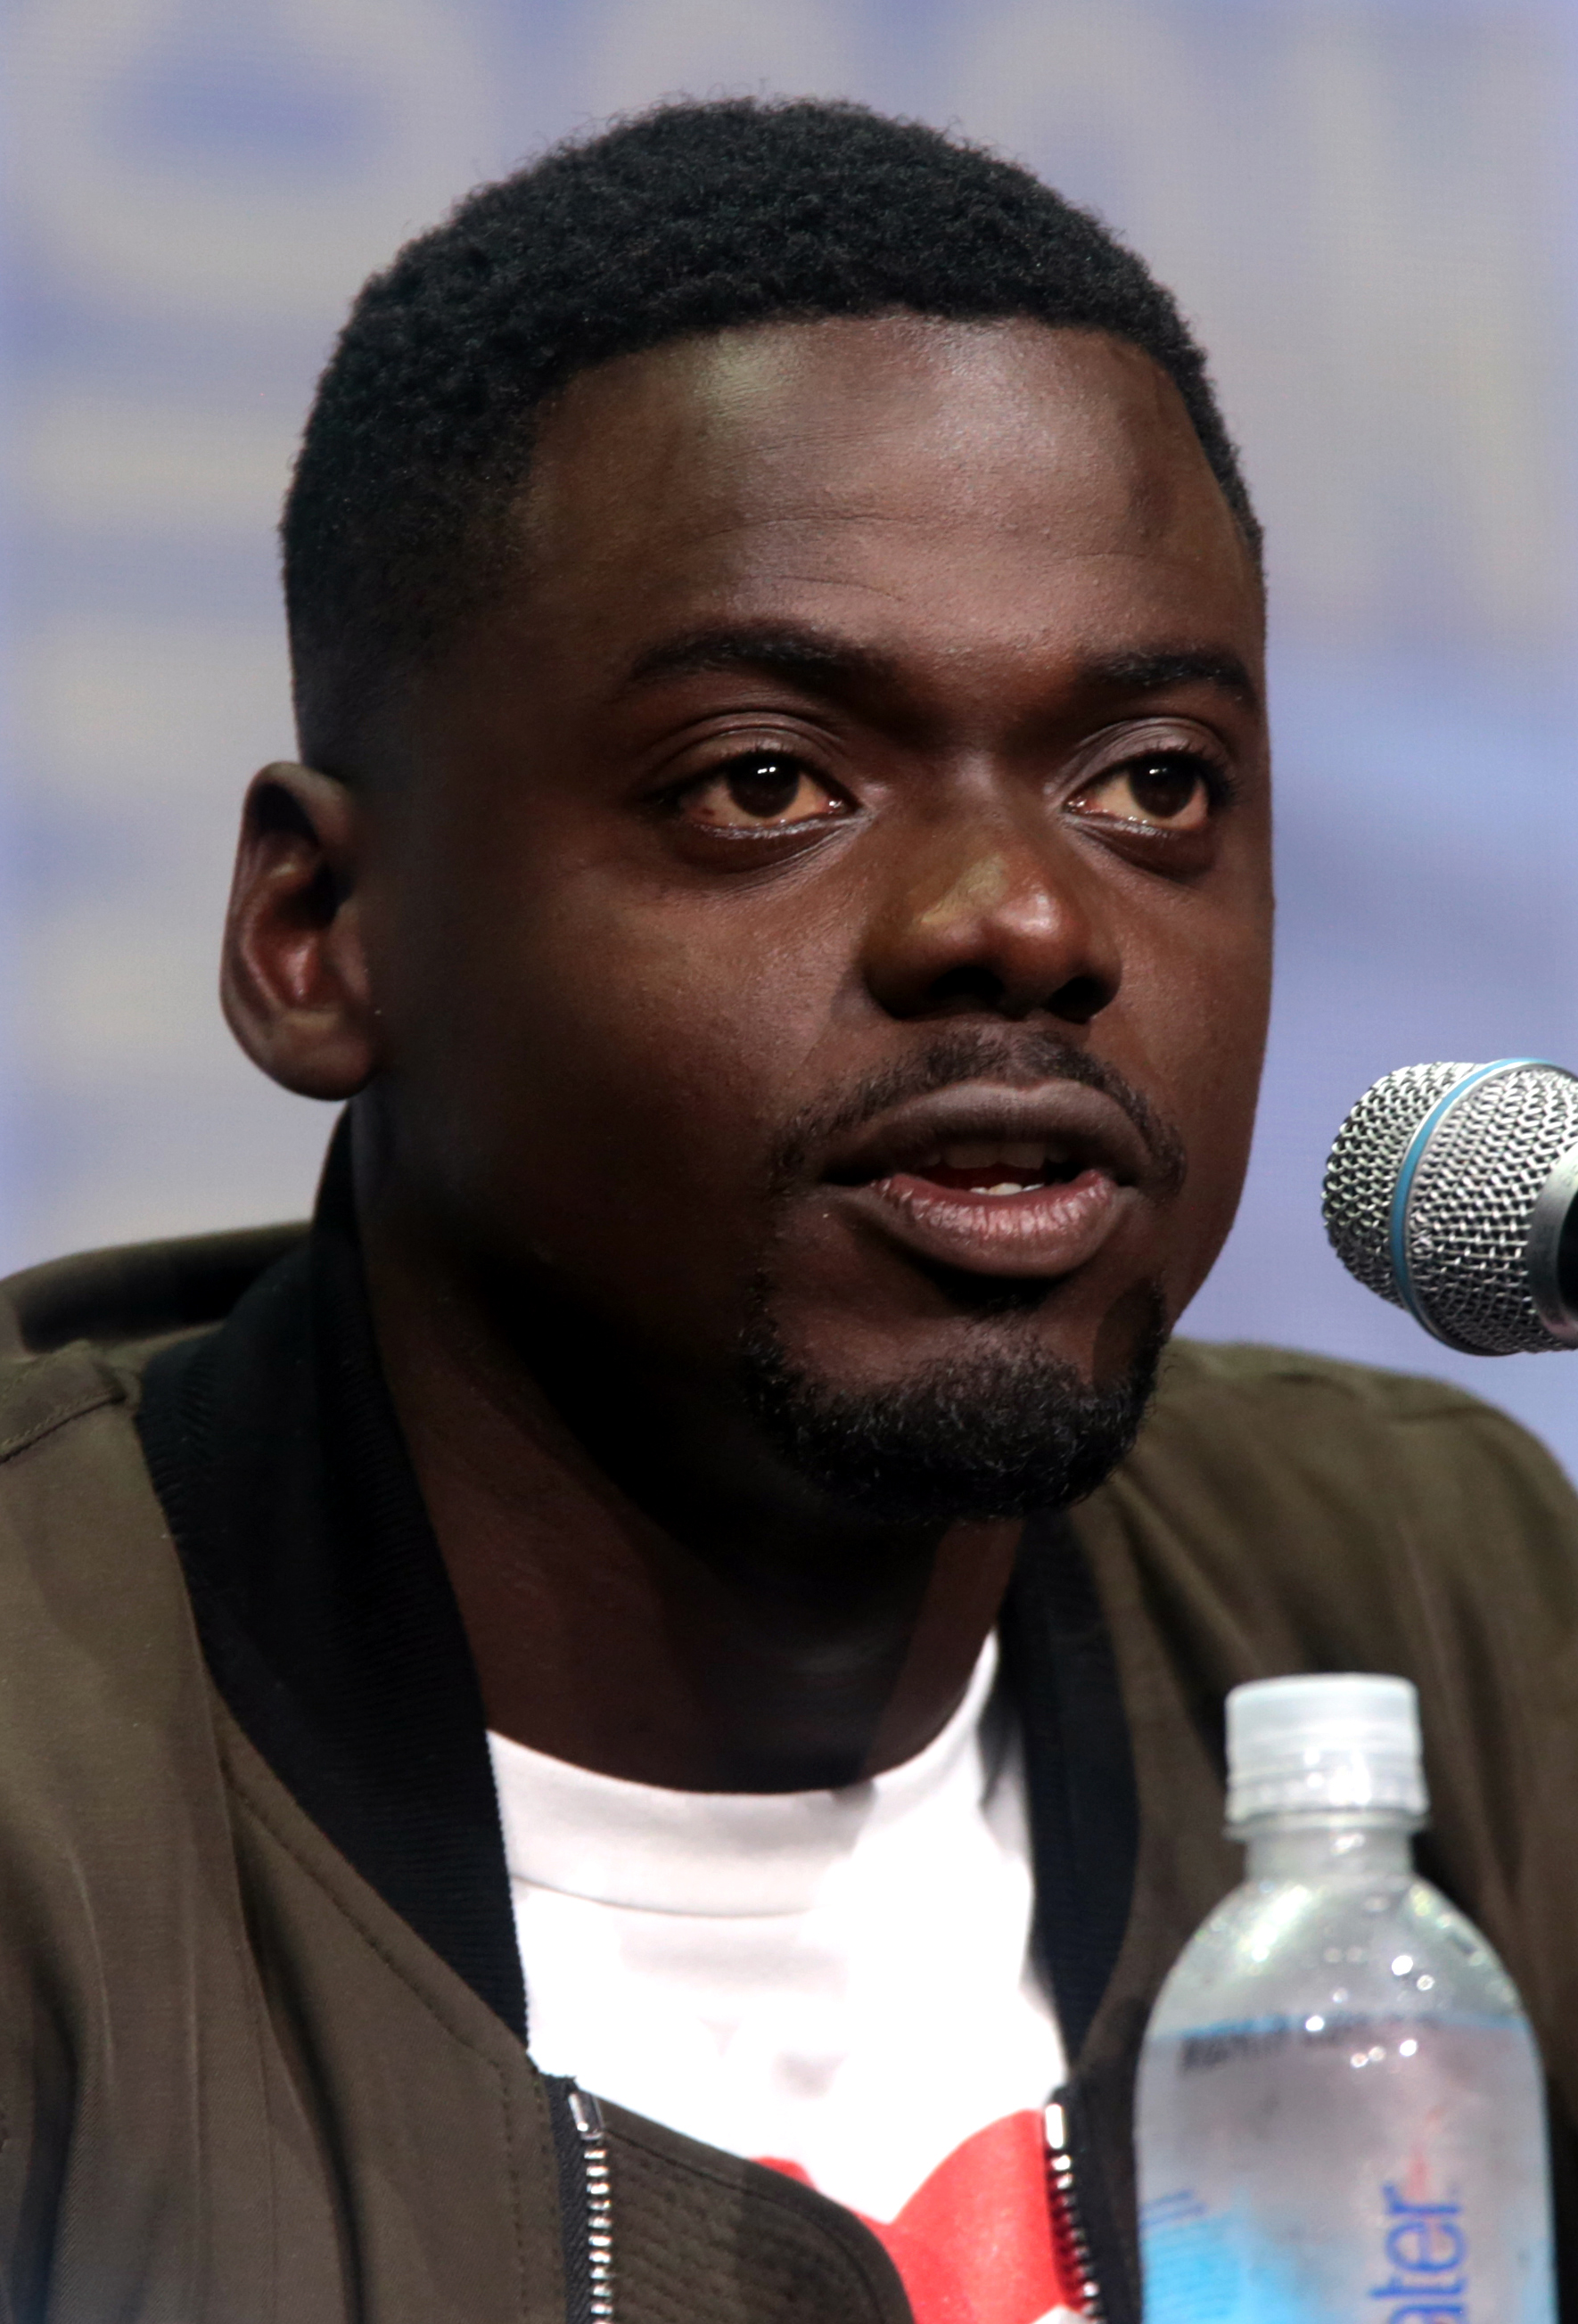 The 29-year old son of father (?) and mother(?) Daniel Kaluuya in 2018 photo. Daniel Kaluuya earned a  million dollar salary - leaving the net worth at 1 million in 2018